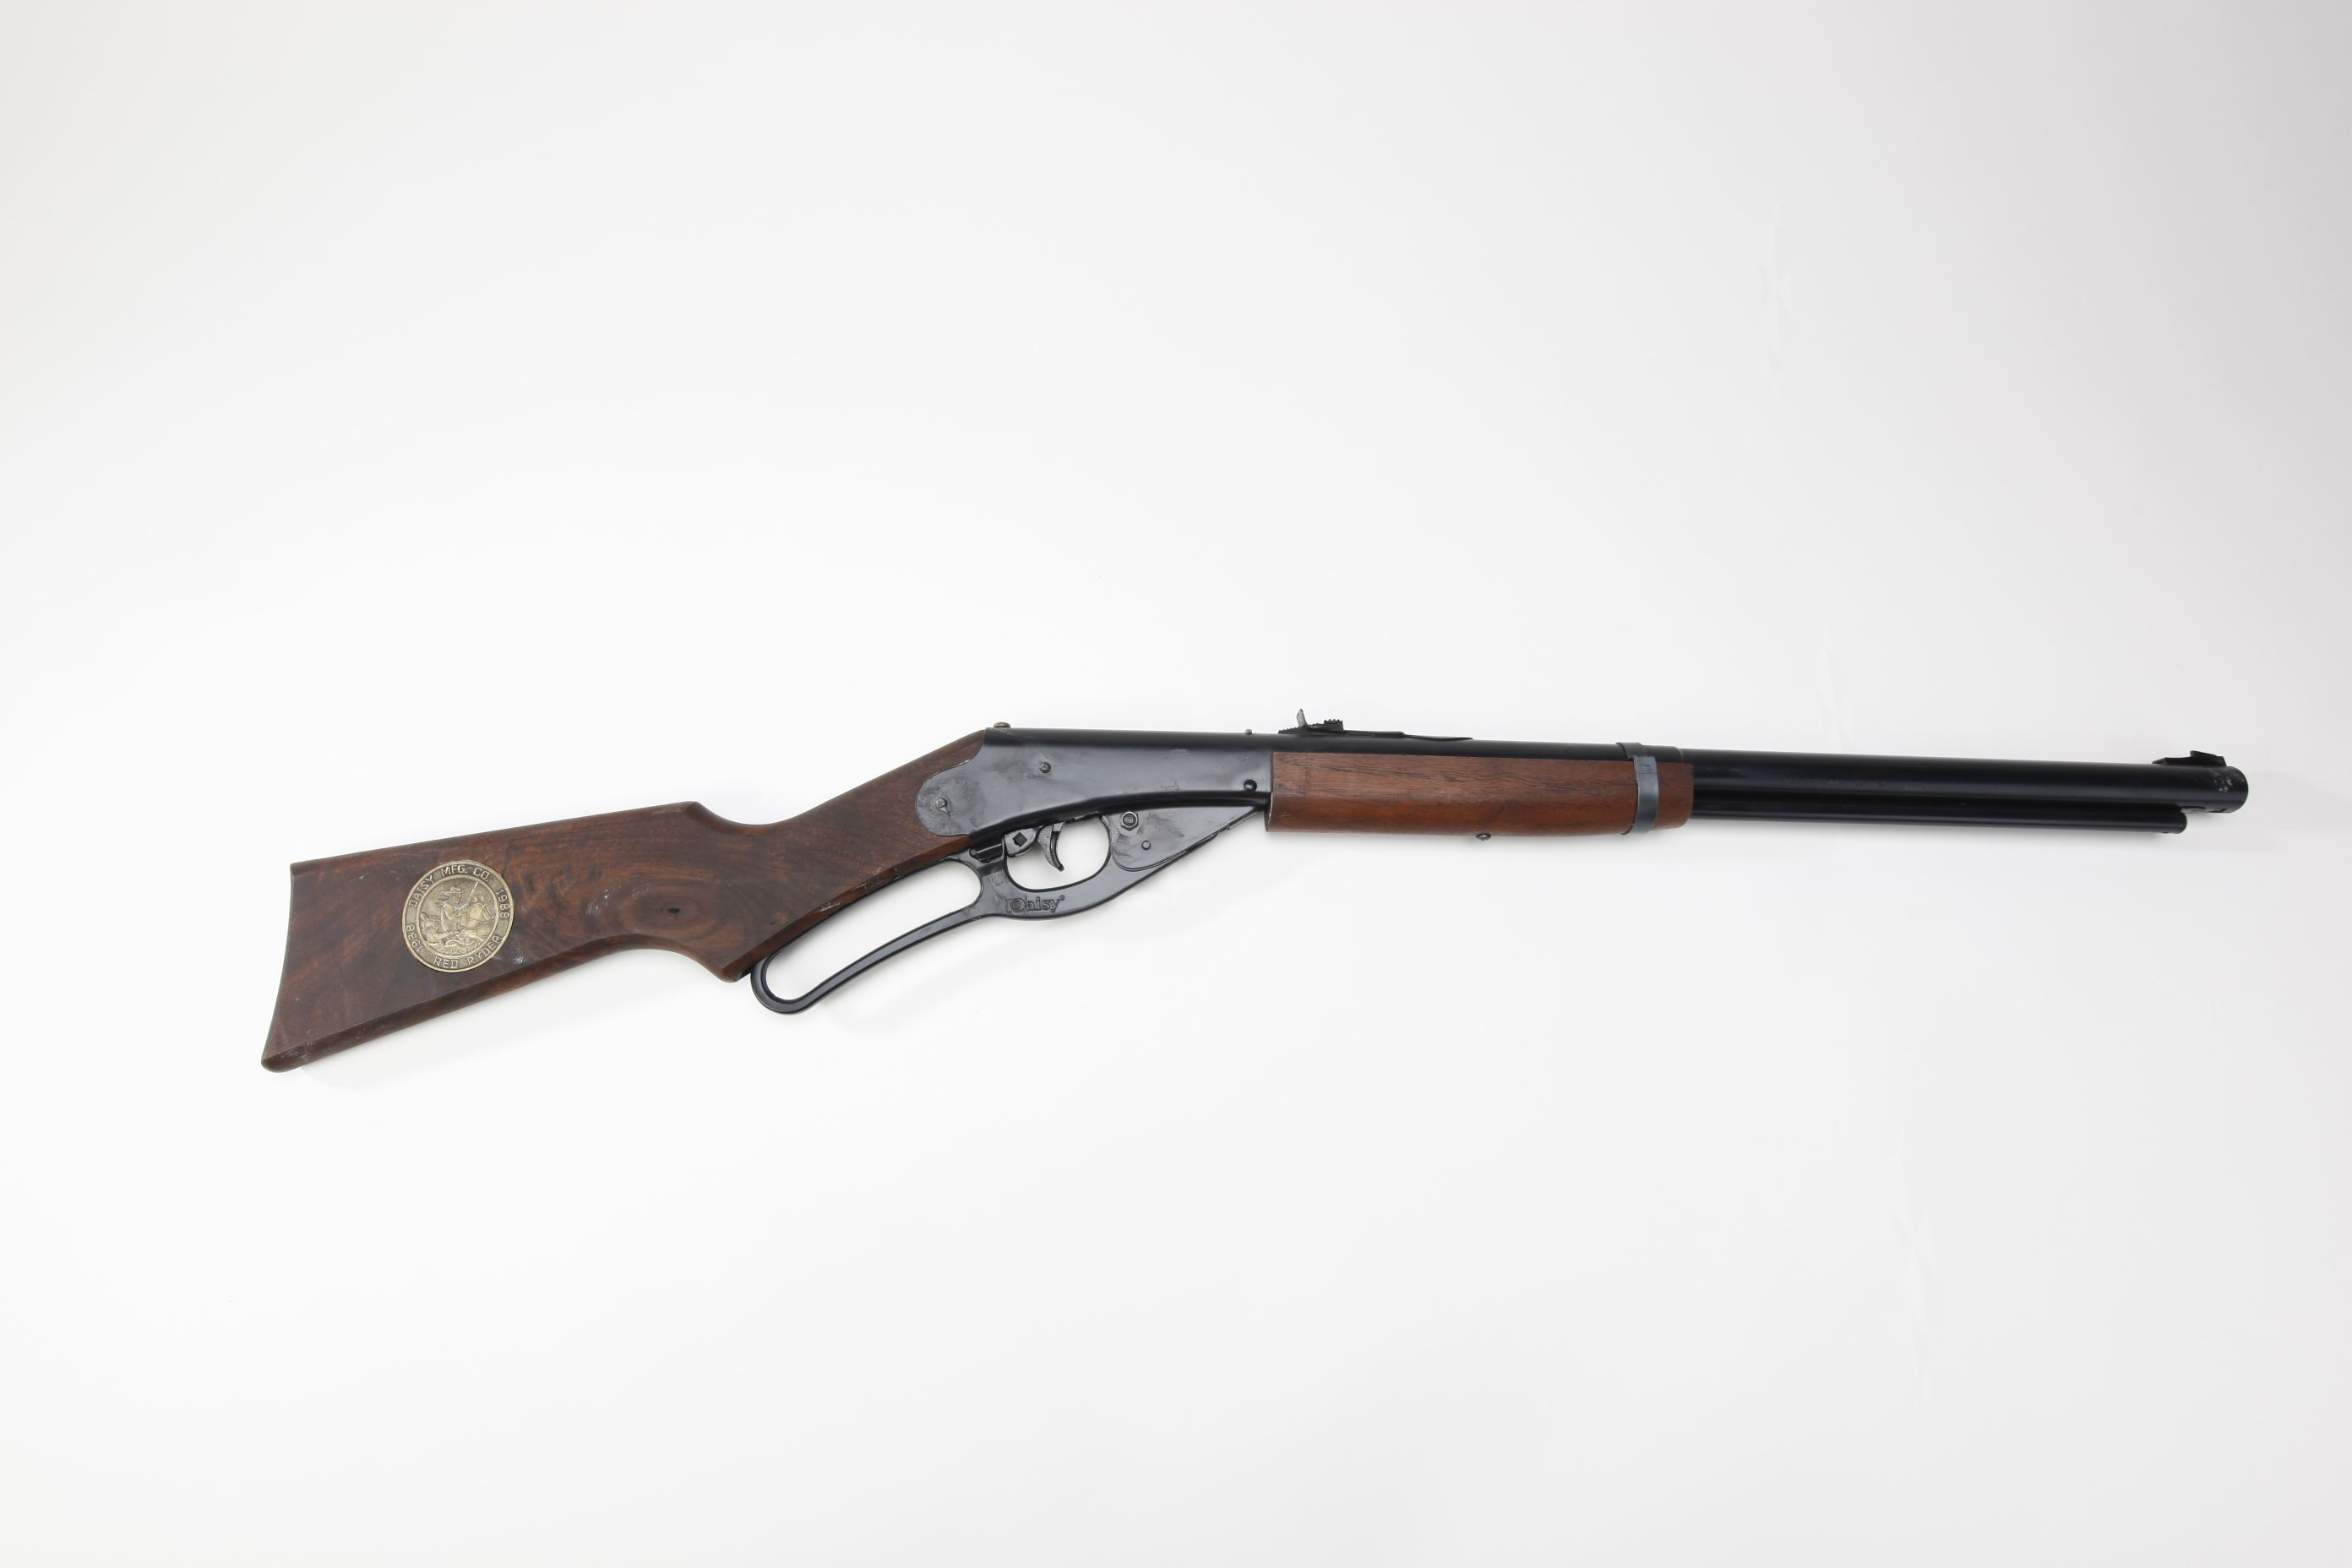 Daisy Red Ryder Commemorative Lever Action Air Rifle